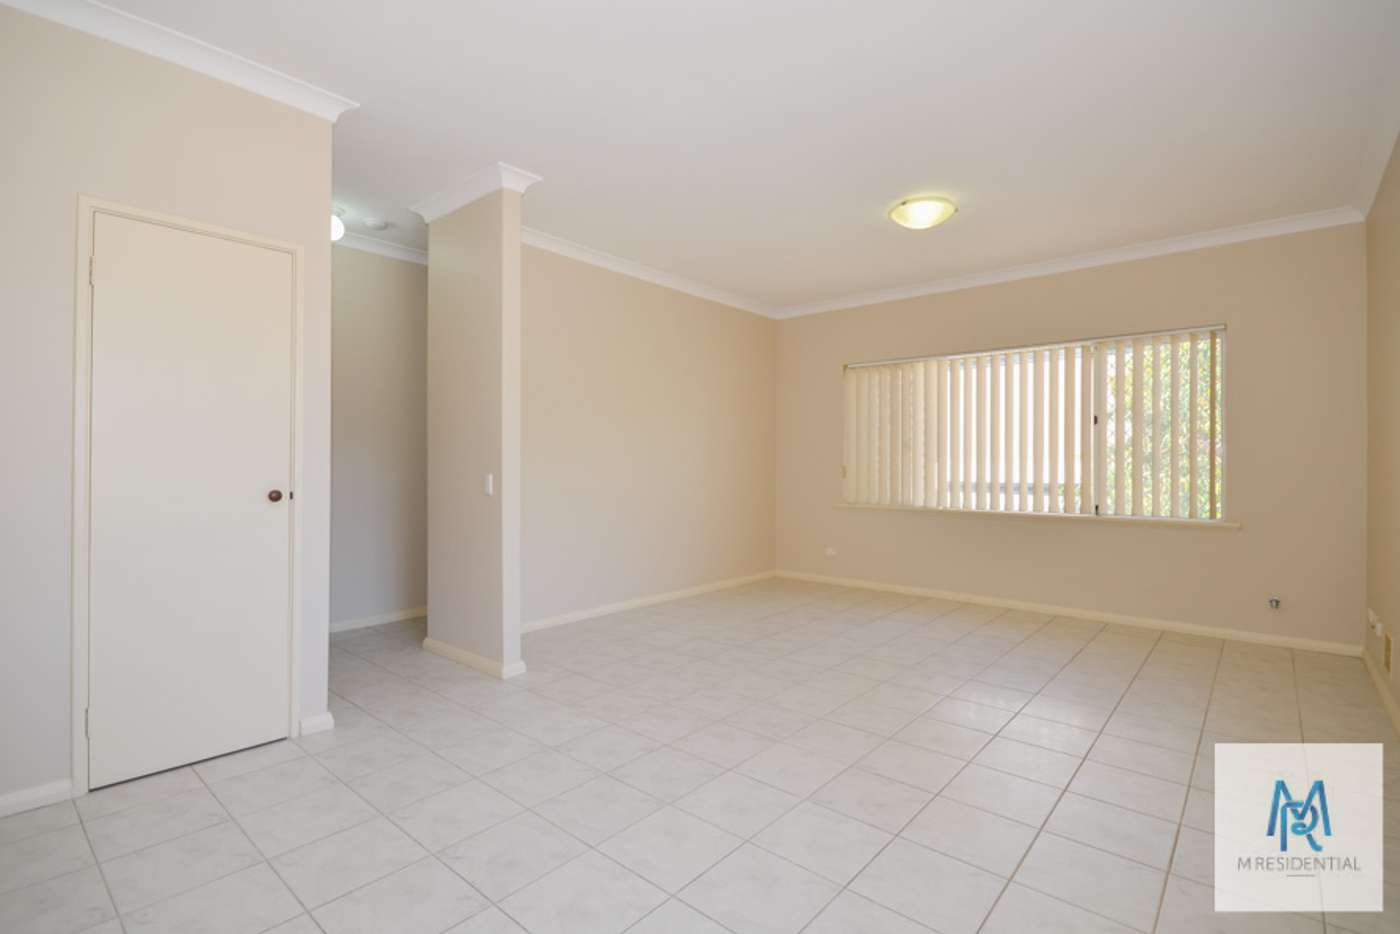 Sixth view of Homely unit listing, 11/5 Brookside Avenue, South Perth WA 6151